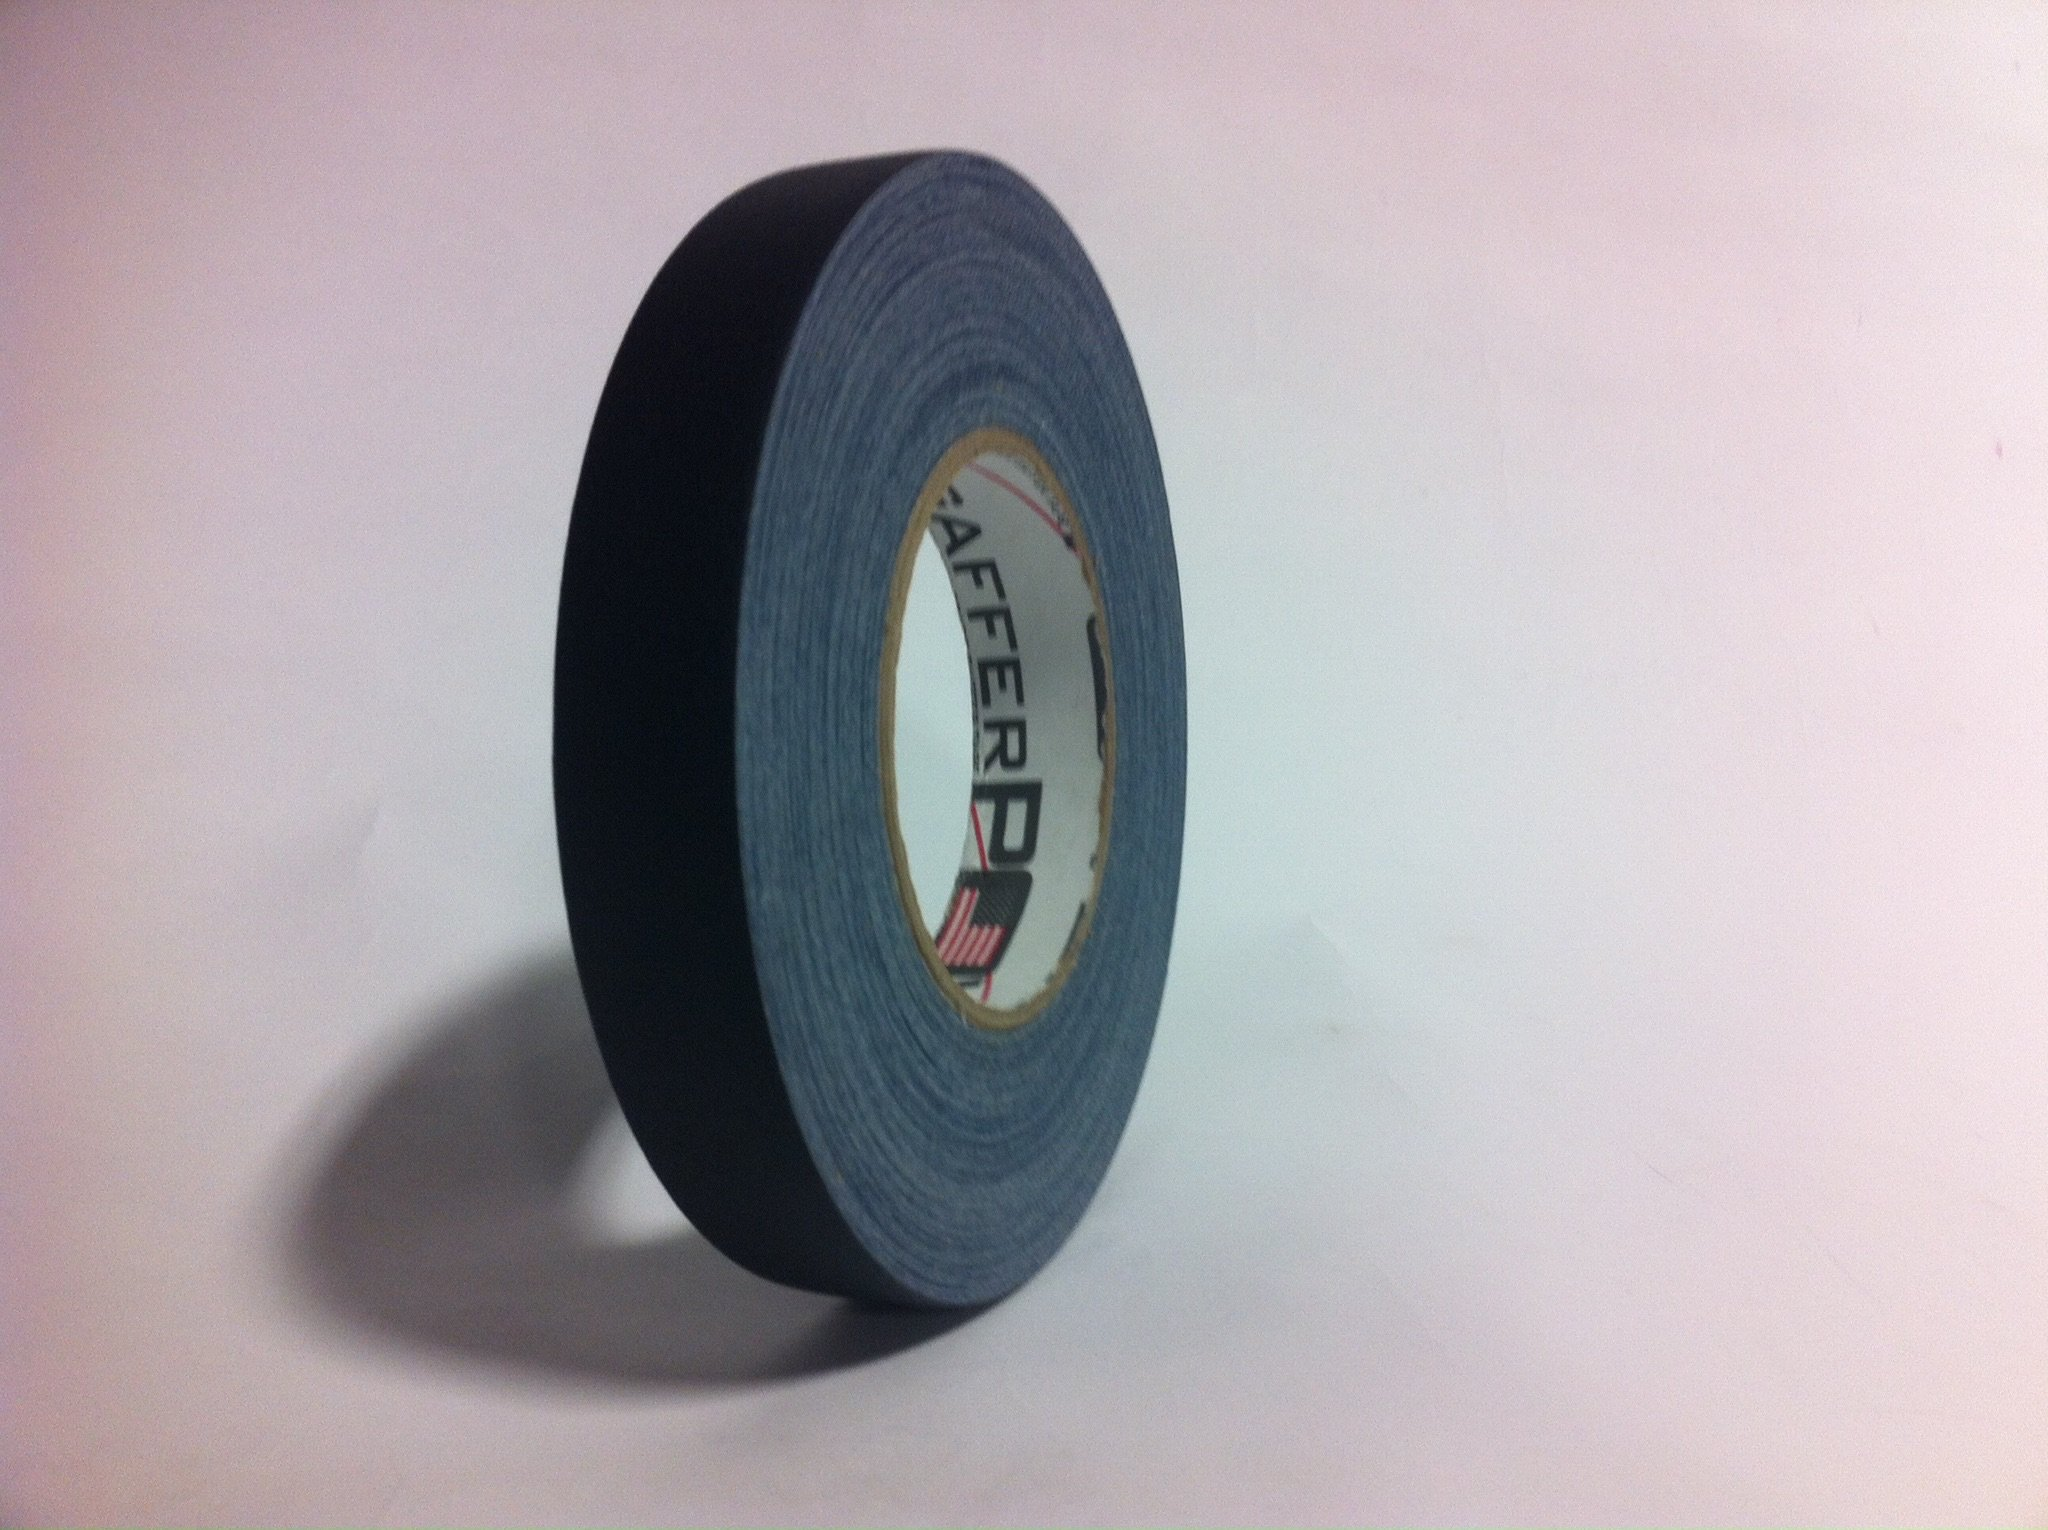 Professional Premium Grade Gaffer Tape - BLACK 1 In x 60 Yds - Heavy Duty Pro Gaff Tape - Secures Cables, Holds Down Wires Leaves No Sticky Residue Easy to Tear, Multipurpose, Better Than Duct Tape by Gaffer Power (Image #4)